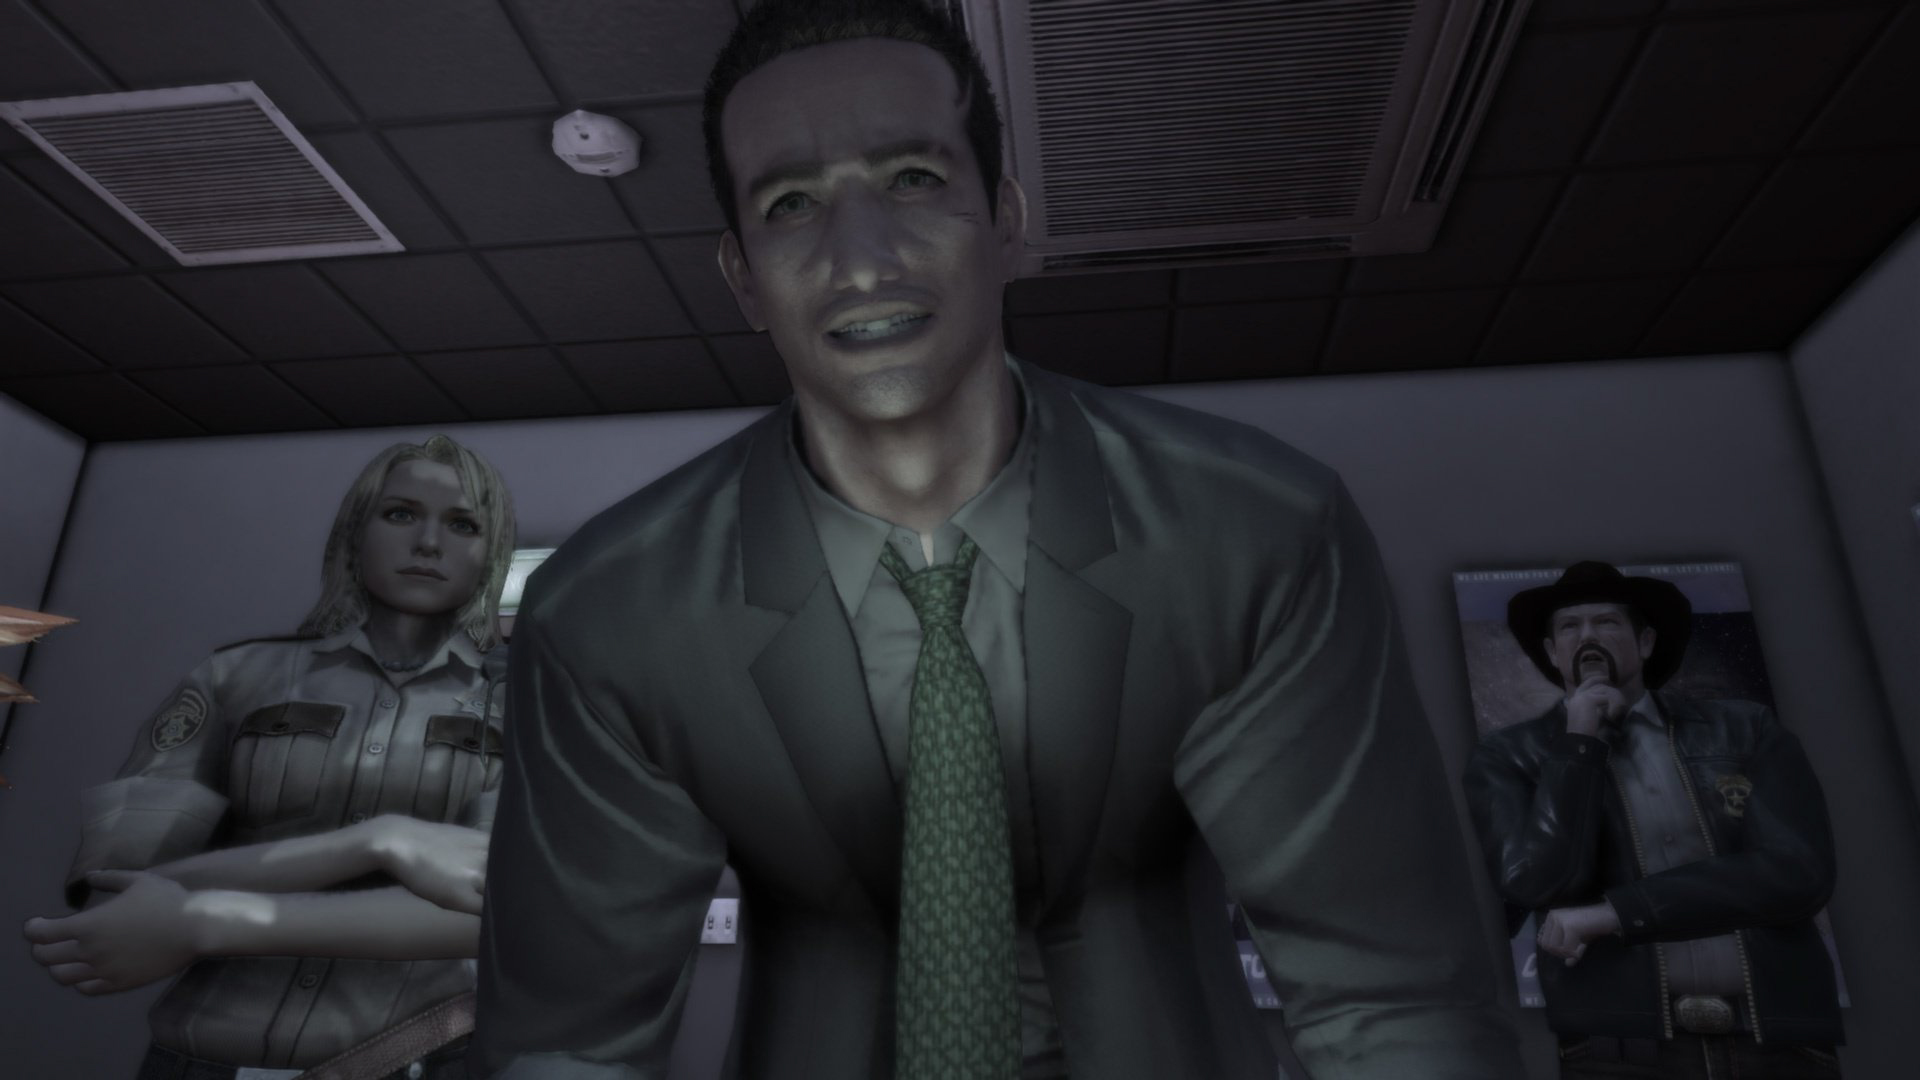 Is it possible to make a sequel to Deadly Premonition without losing what made the original so unique?